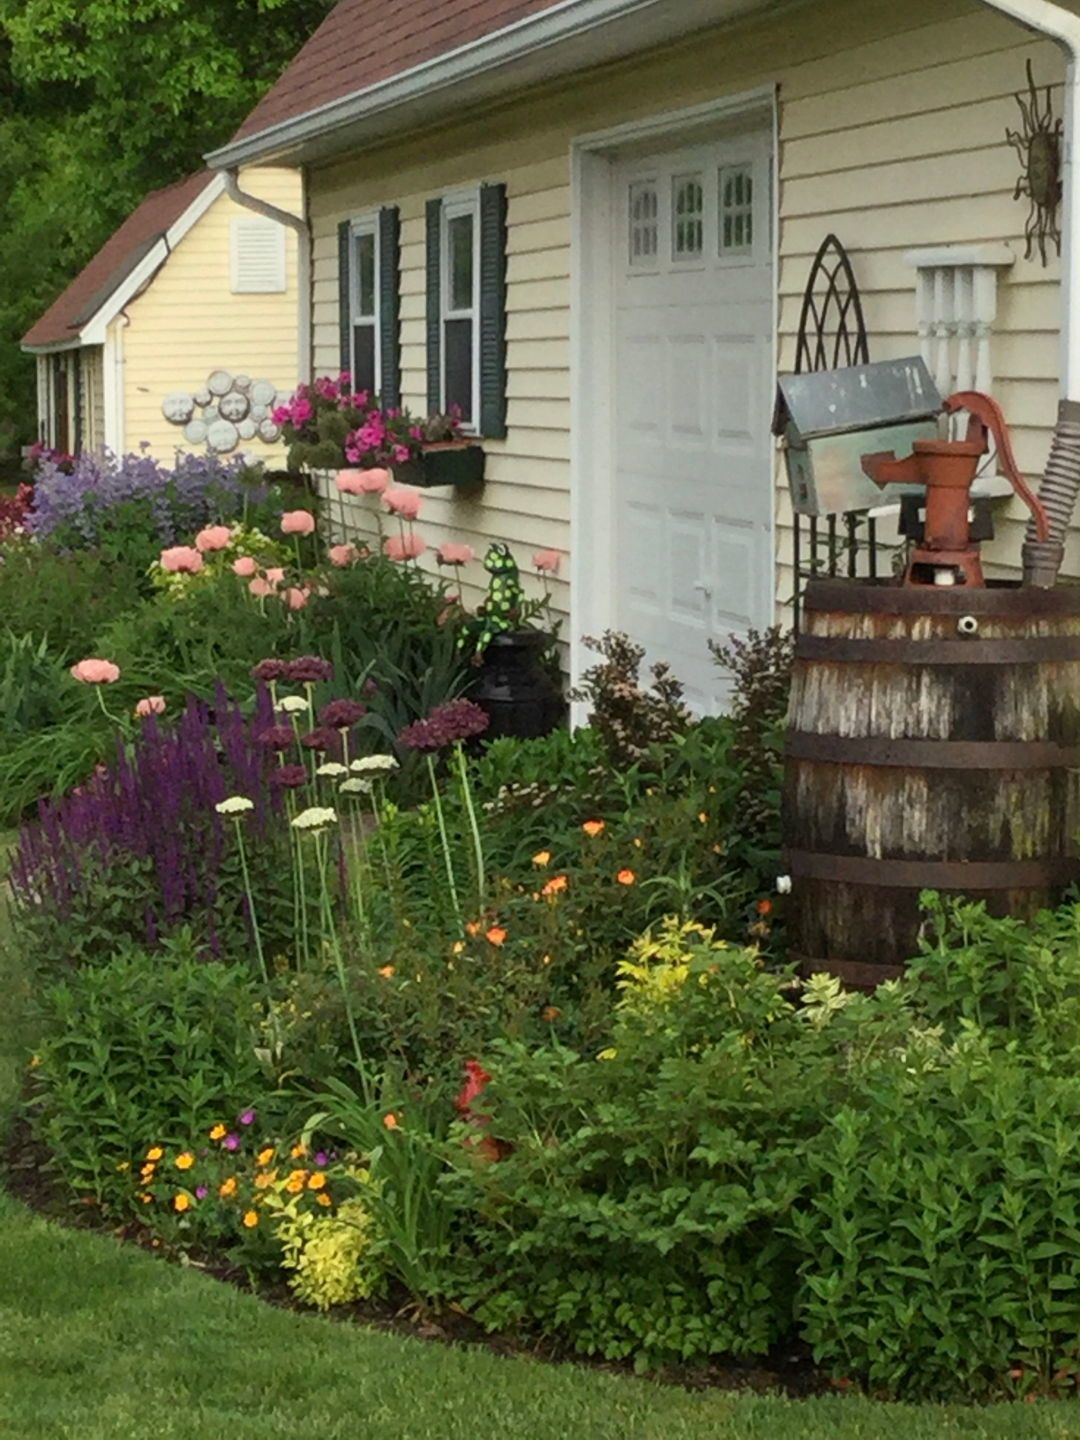 Packed with Beauty, Part 1 is part of Beautiful garden Inspiration - Learn how this gardener in Michigan deals with creating an appealing landscape right next to a large factory space  Choosing plants wisely, as well as packing them closely together leads to great results!